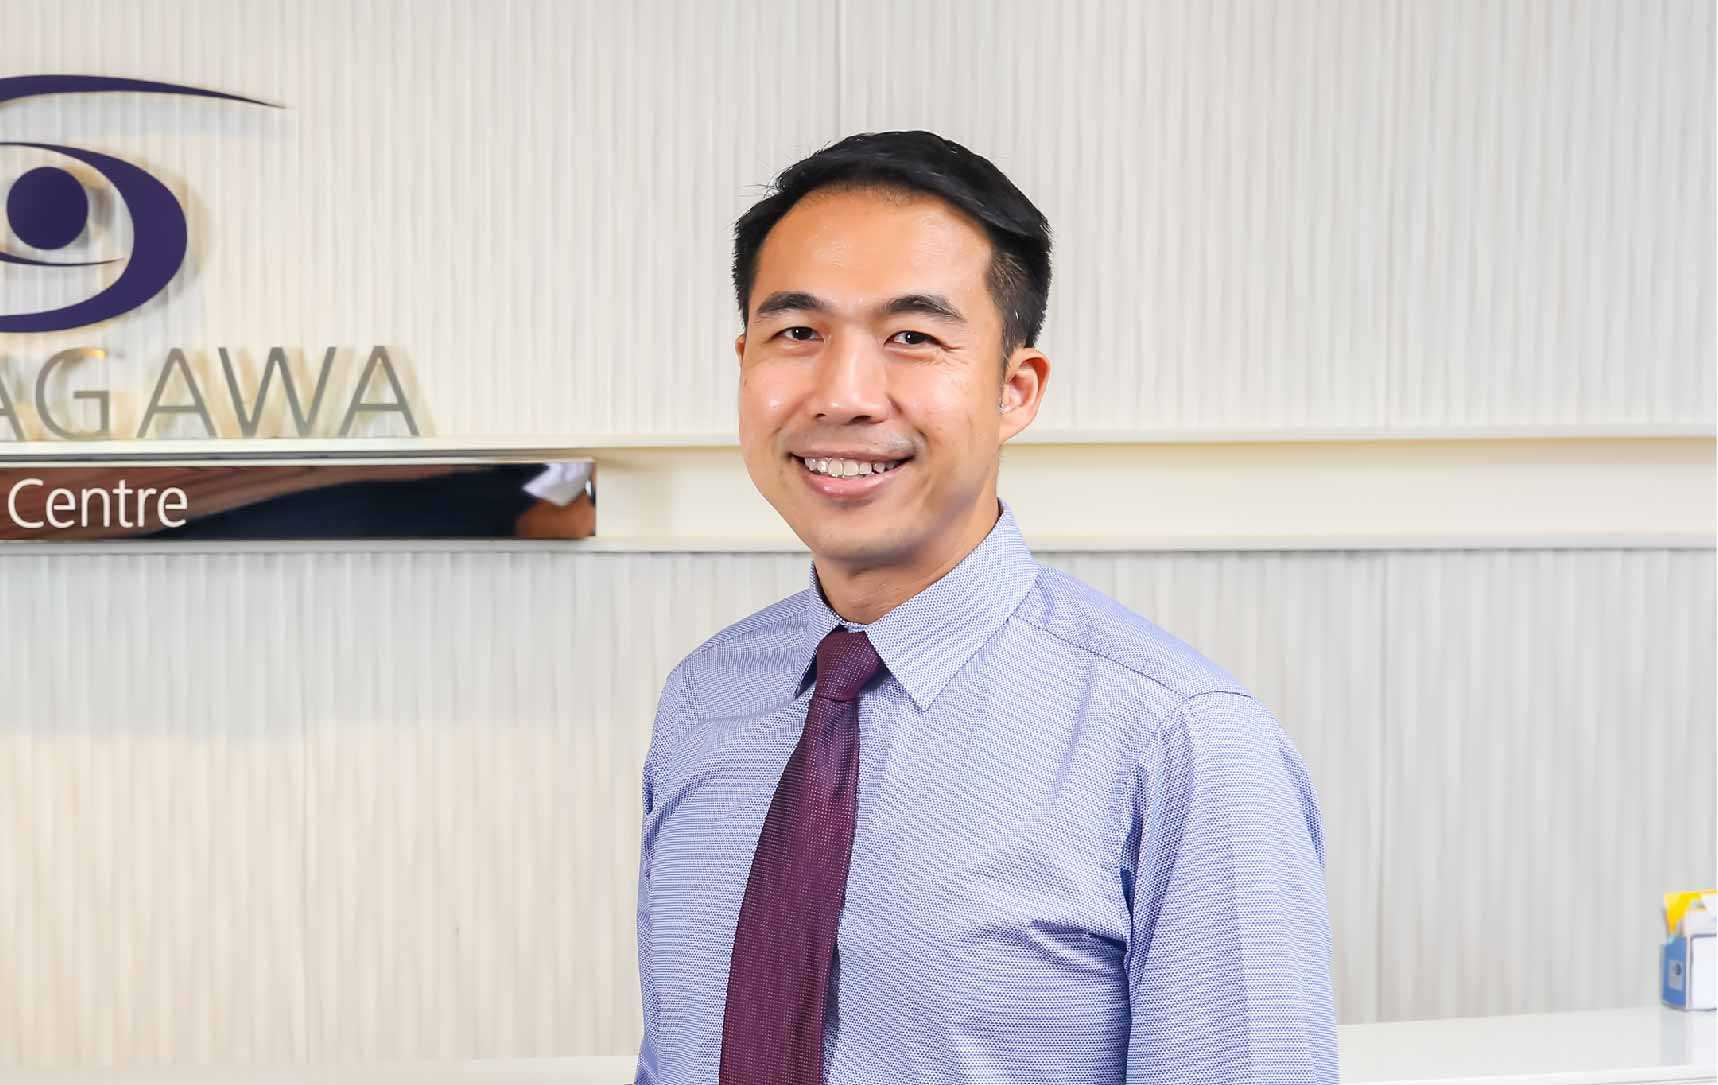 Dr Lee Sao Bing - Eye Doctor - Shinagawa Eye Centre